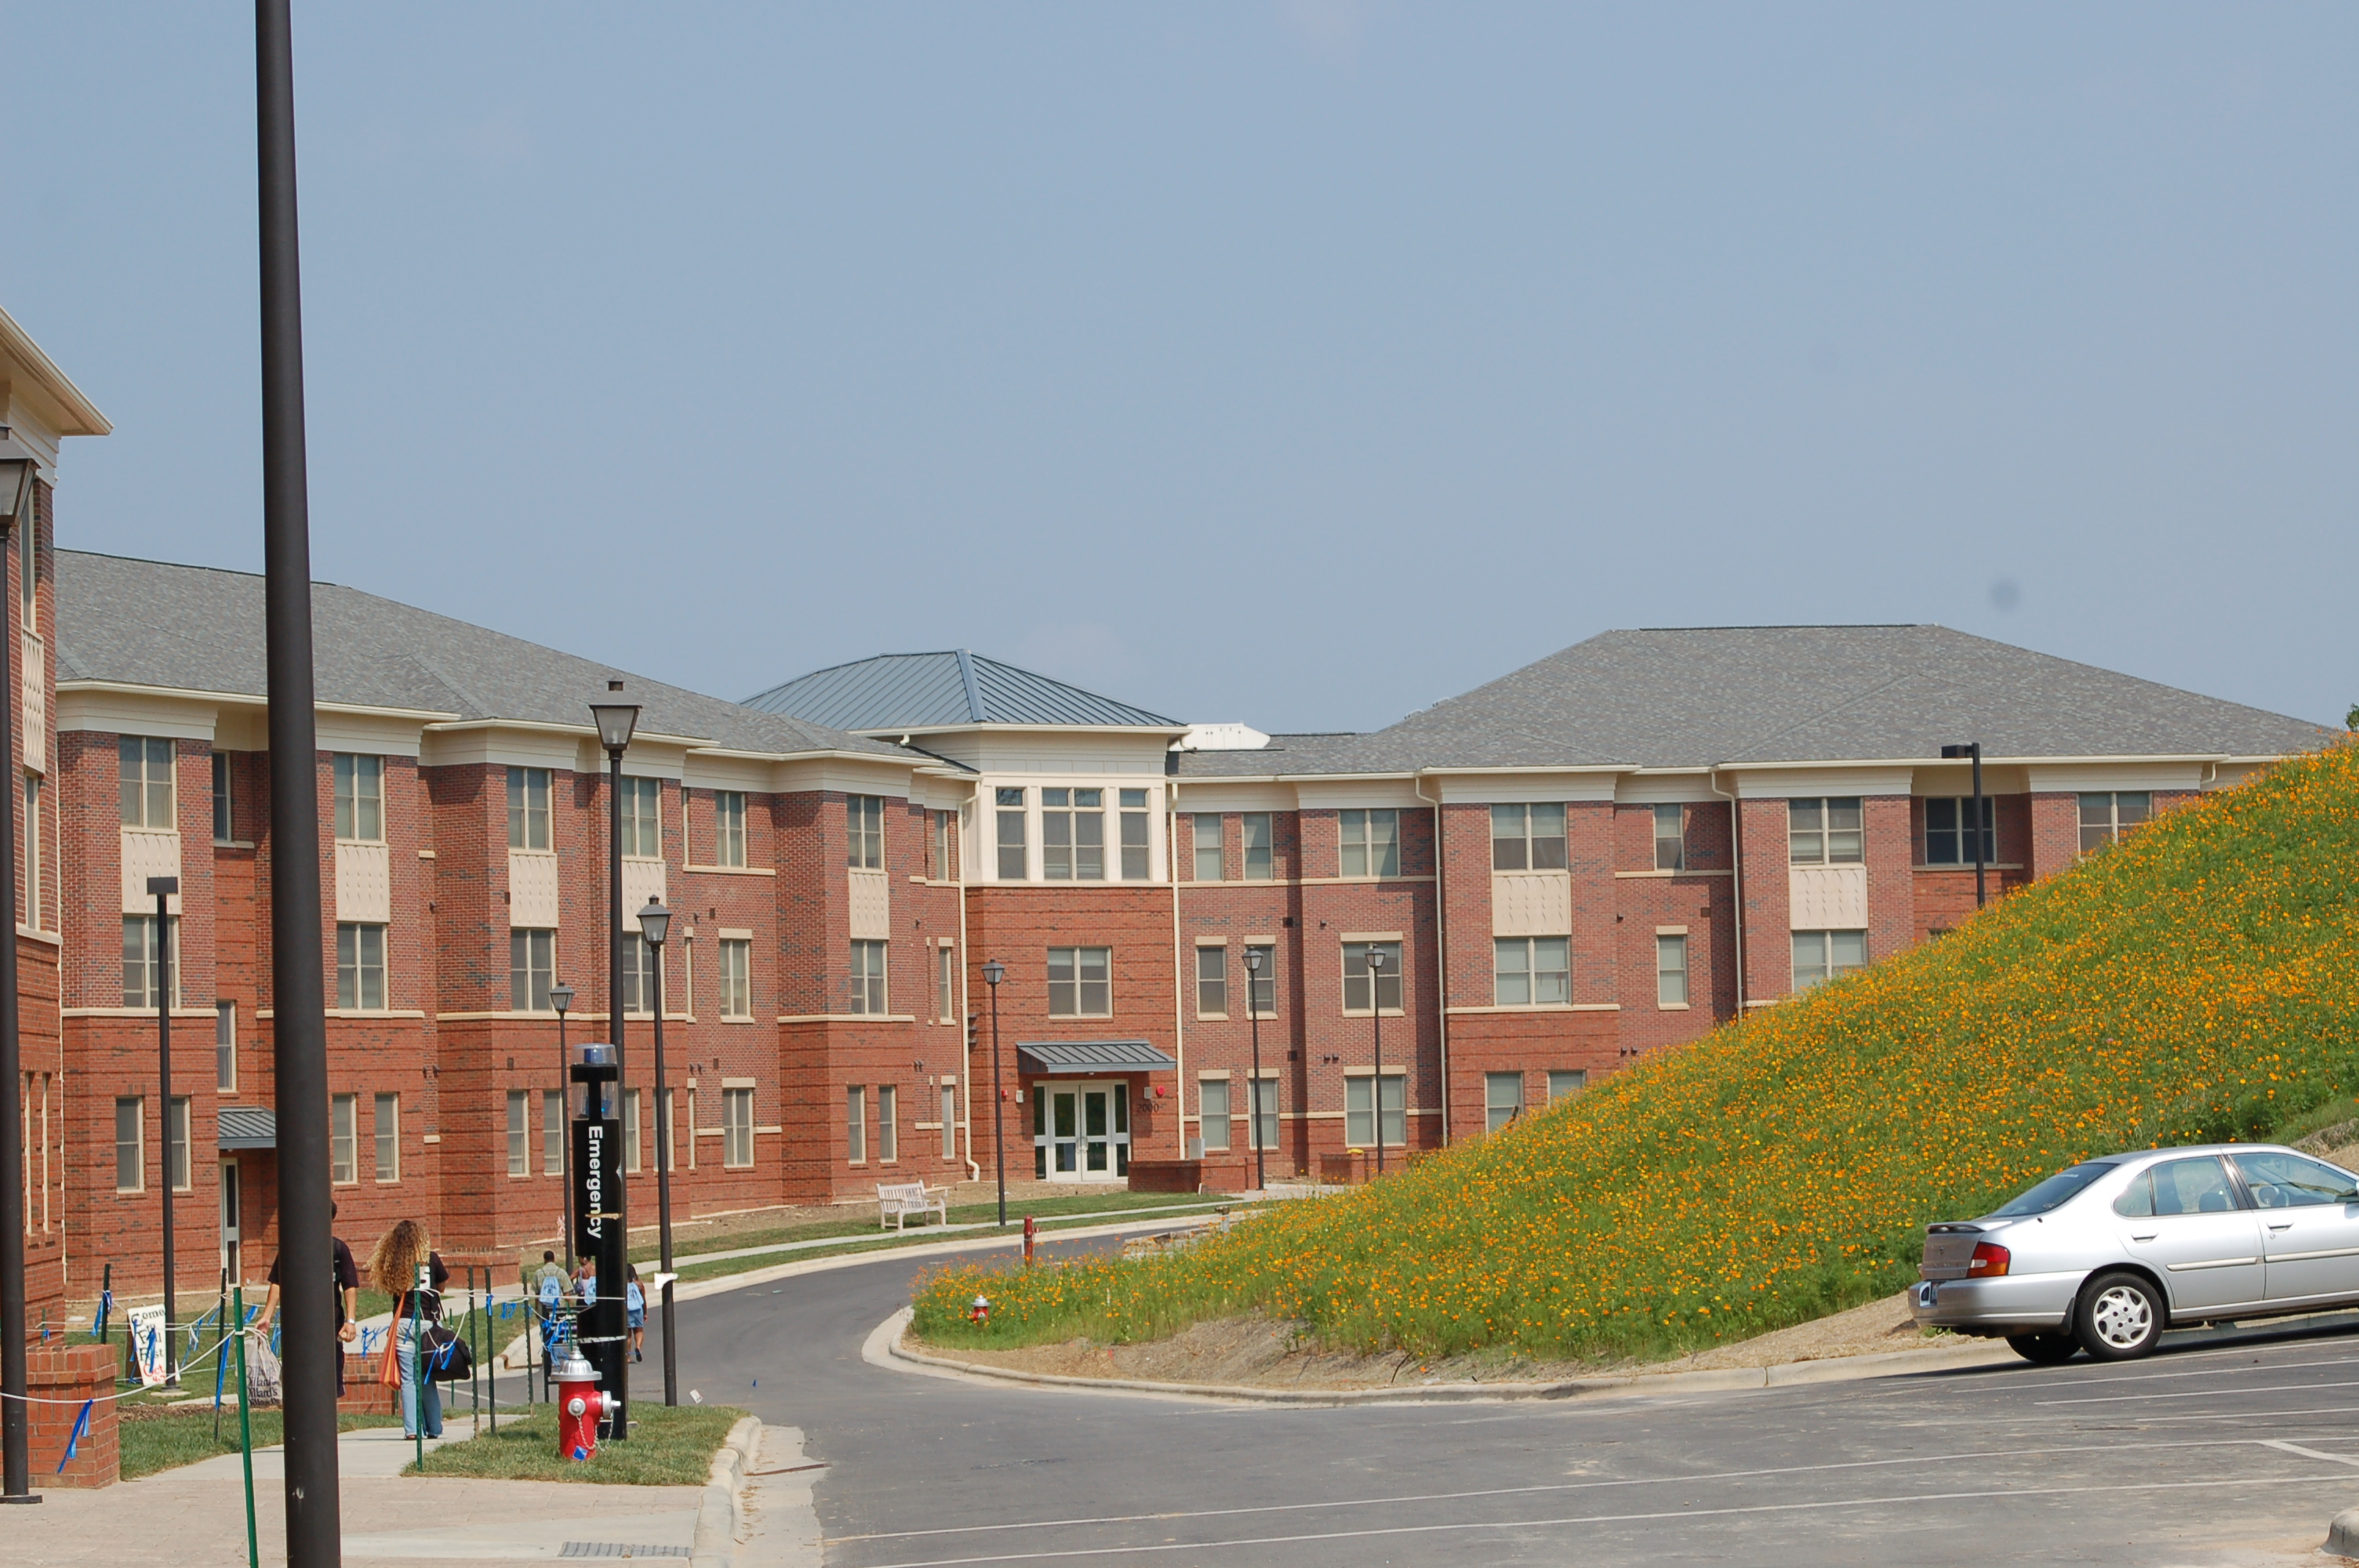 Historical Photo of Baity Hill 2000 Student Family Housing